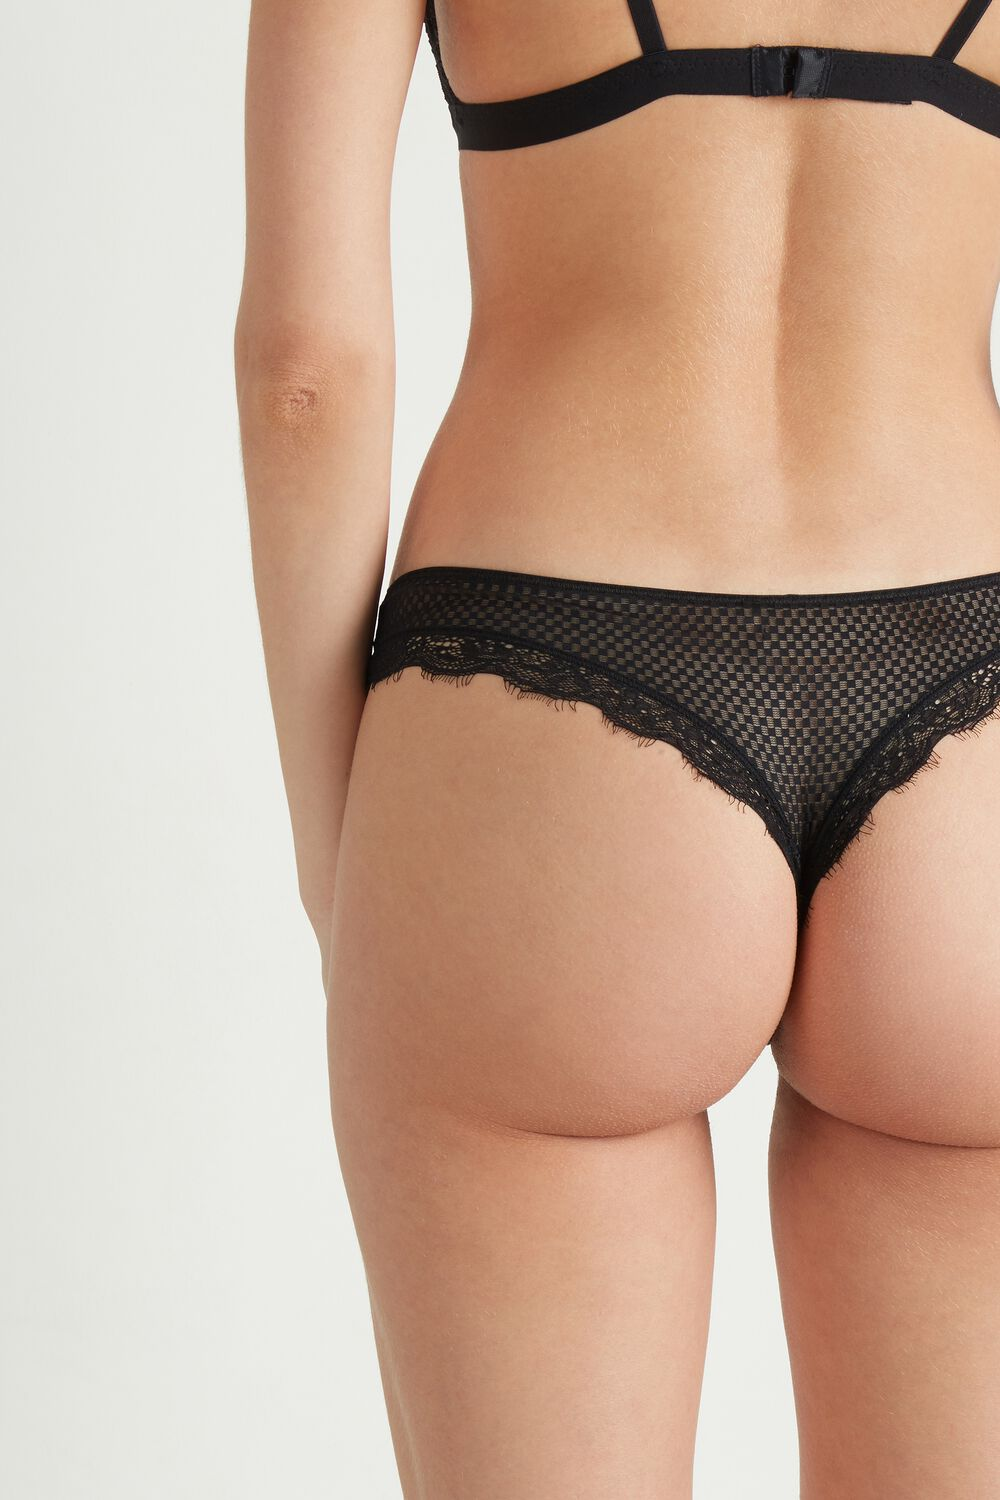 Check Mate Lace Brazilian Briefs